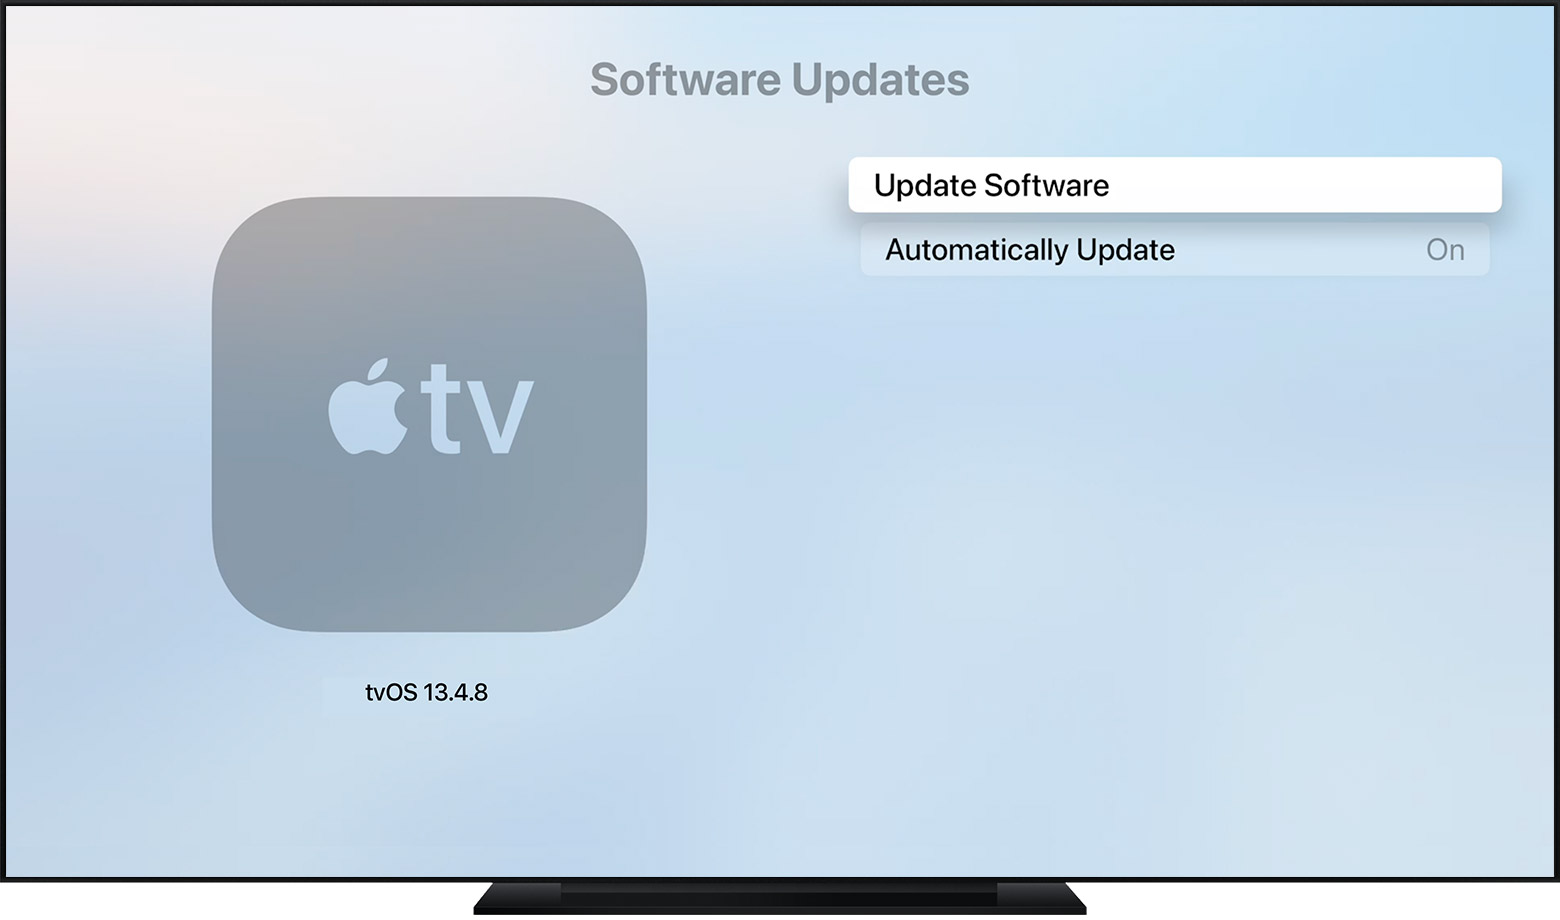 tvOS showing the Software Updates page, with Update Software highlighted.